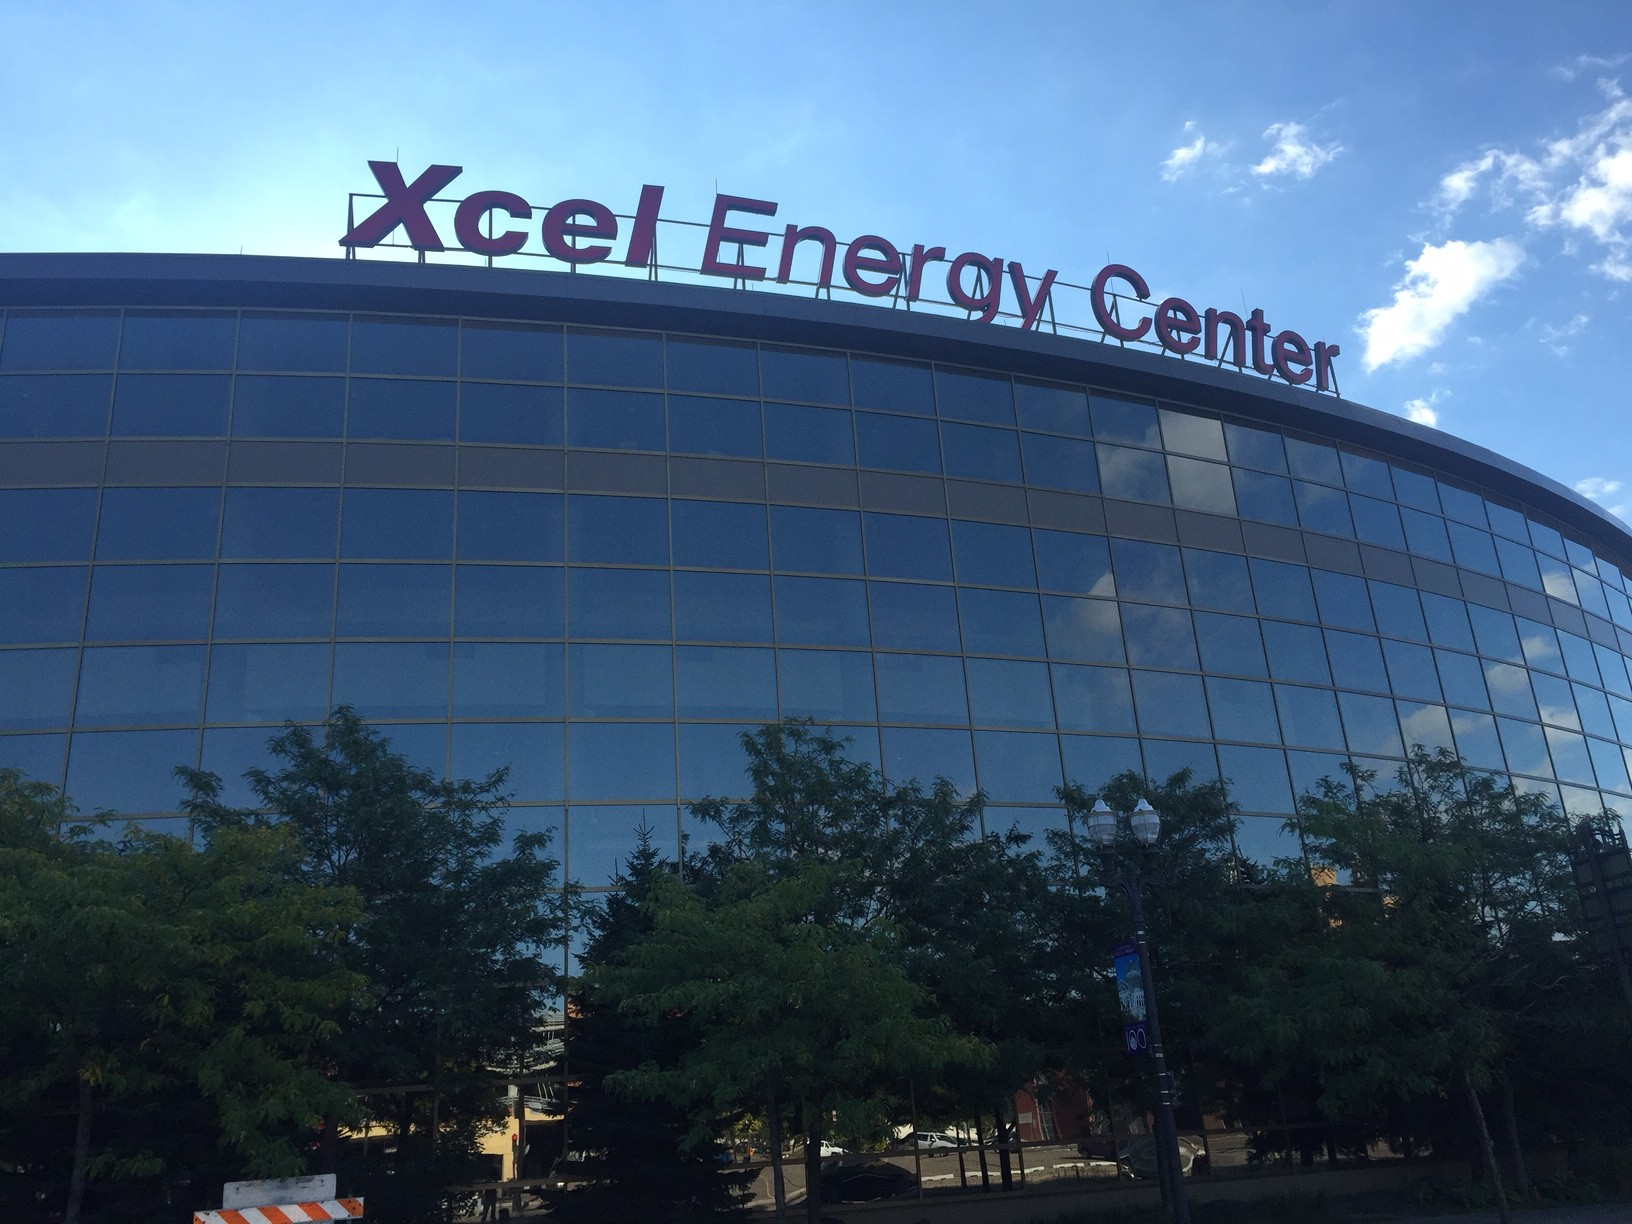 The XCel Energy Center in St. Paul, Minn., is the site of Jack Eichel's preseason debut tonight (Mike Harrington/Buffalo News).